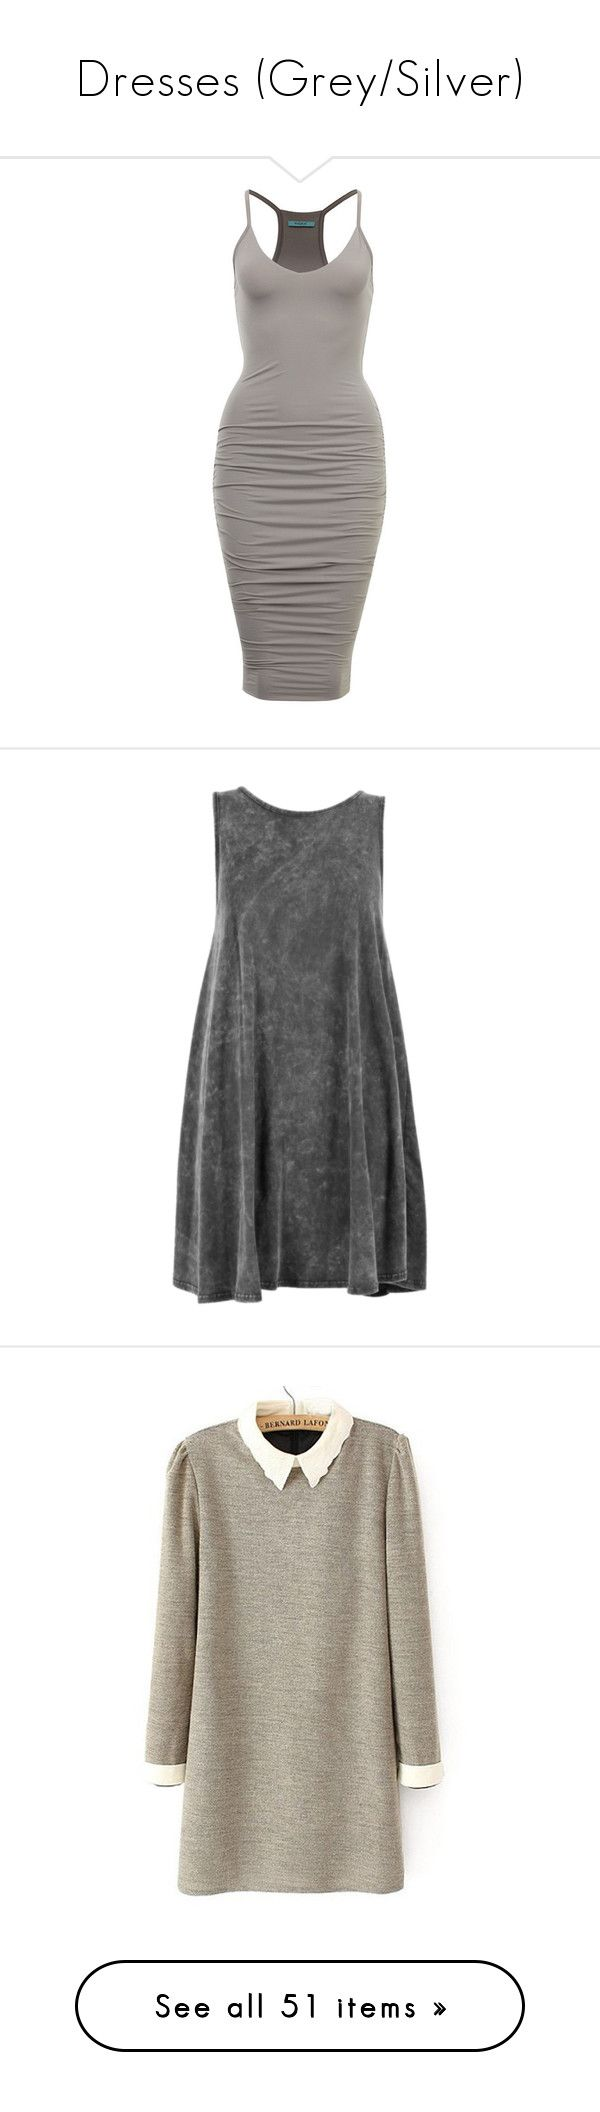 """Dresses (Grey/Silver)"" by youreapeach ❤ liked on Polyvore featuring dresses, vestidos, grey, short dress, short grey dress, grey dress, short gray dress, gray mini dress, mini dress and acid wash dress"